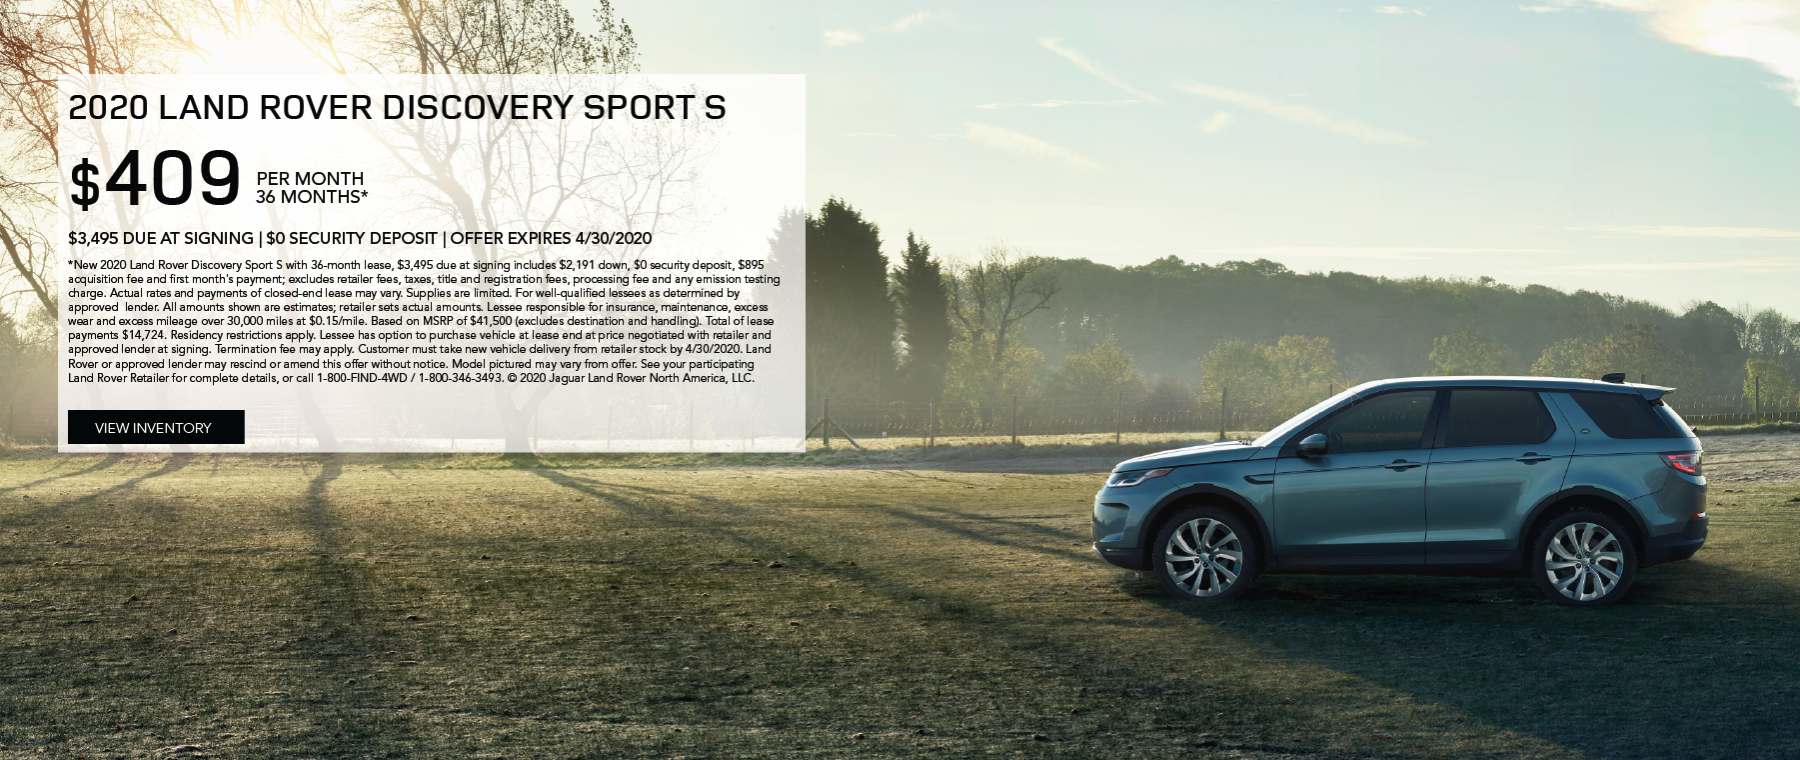 Grey 2020 LAND ROVER DISCOVERY SPORT S. $409 PER MONTH. 36 MONTH LEASE TERM. $3,495 CASH DUE AT SIGNING.. $0 SECURITY DEPOSIT. 10,000 MILES PER YEAR. OFFER ENDS 4/30/2020. click to view inventory.